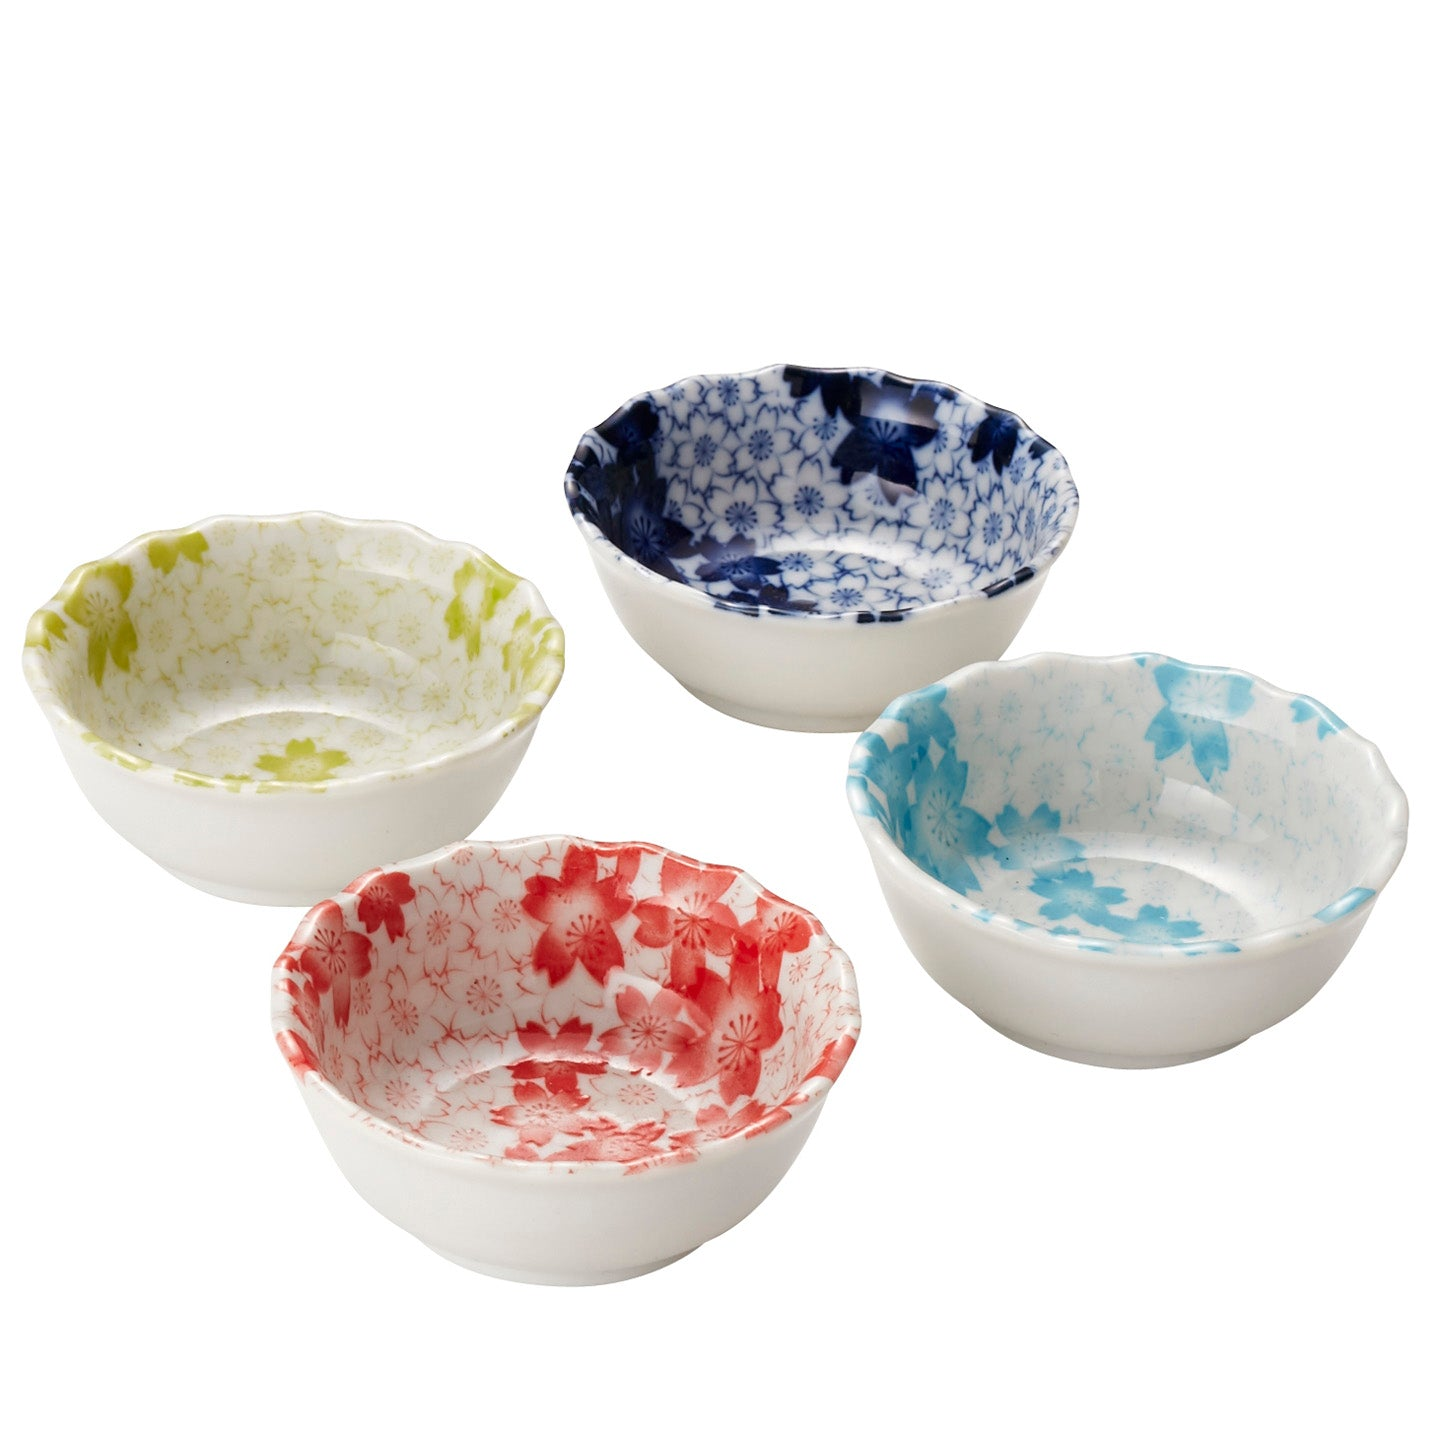 Kasumizakura Set of 4 Dishes